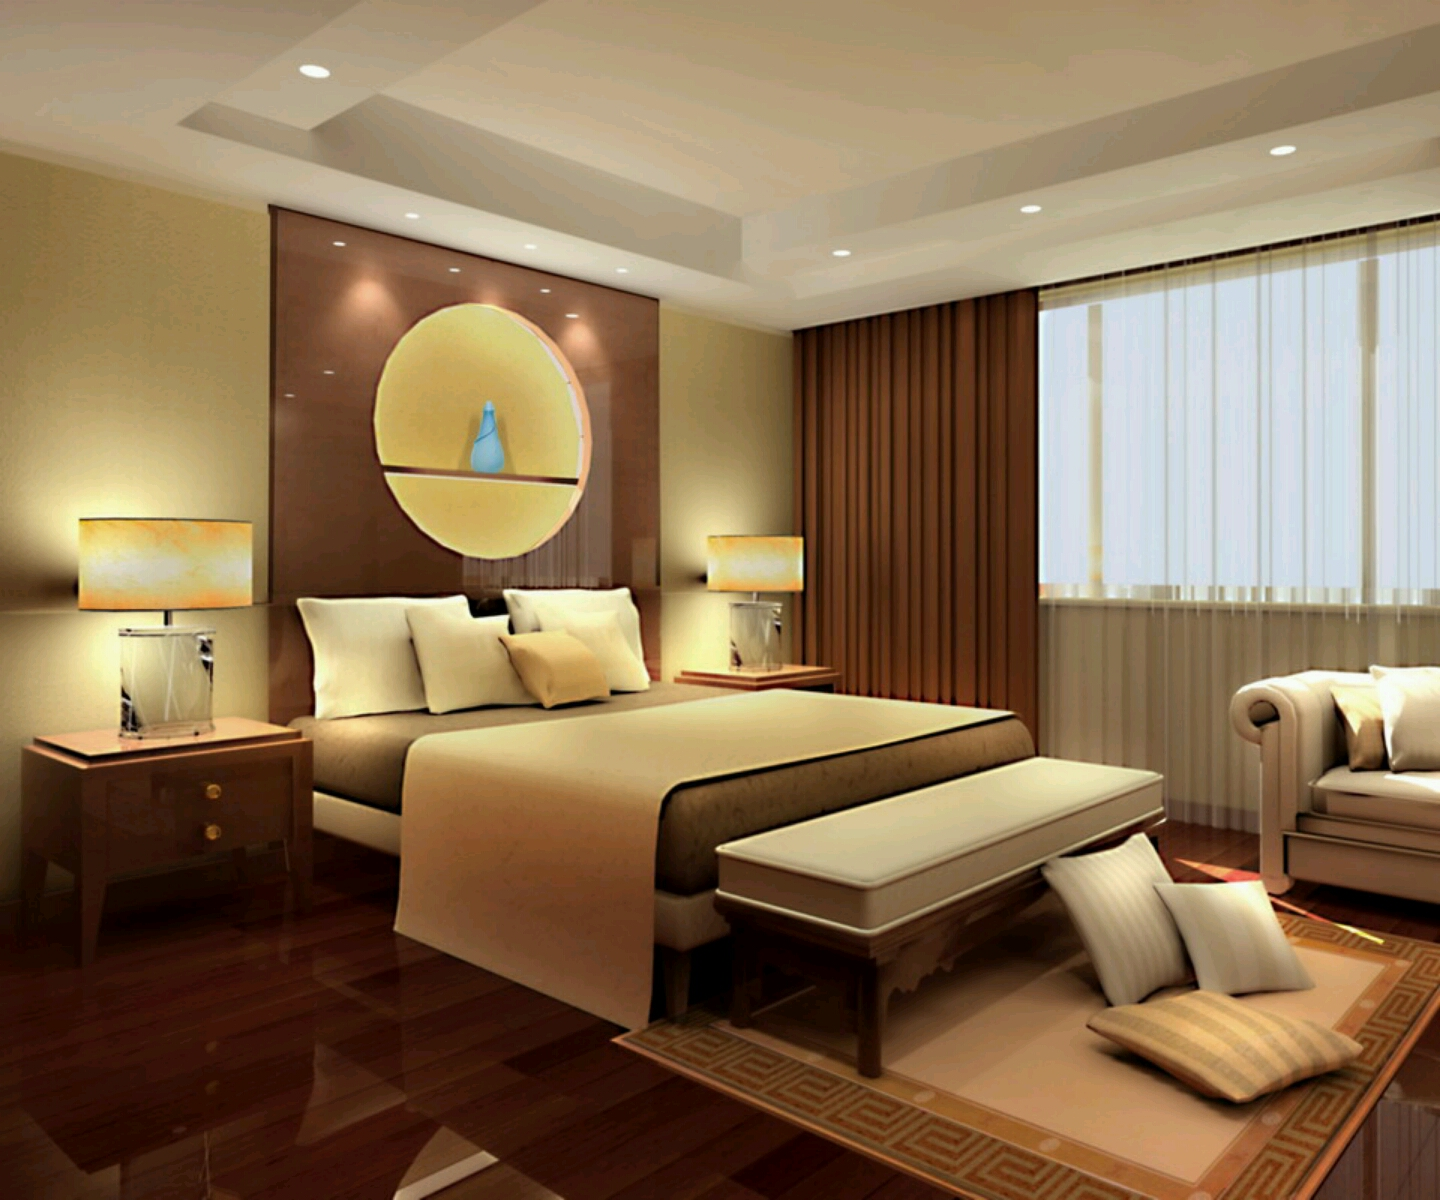 New home designs latest modern beautiful bedrooms for Beautiful bedroom design hd images